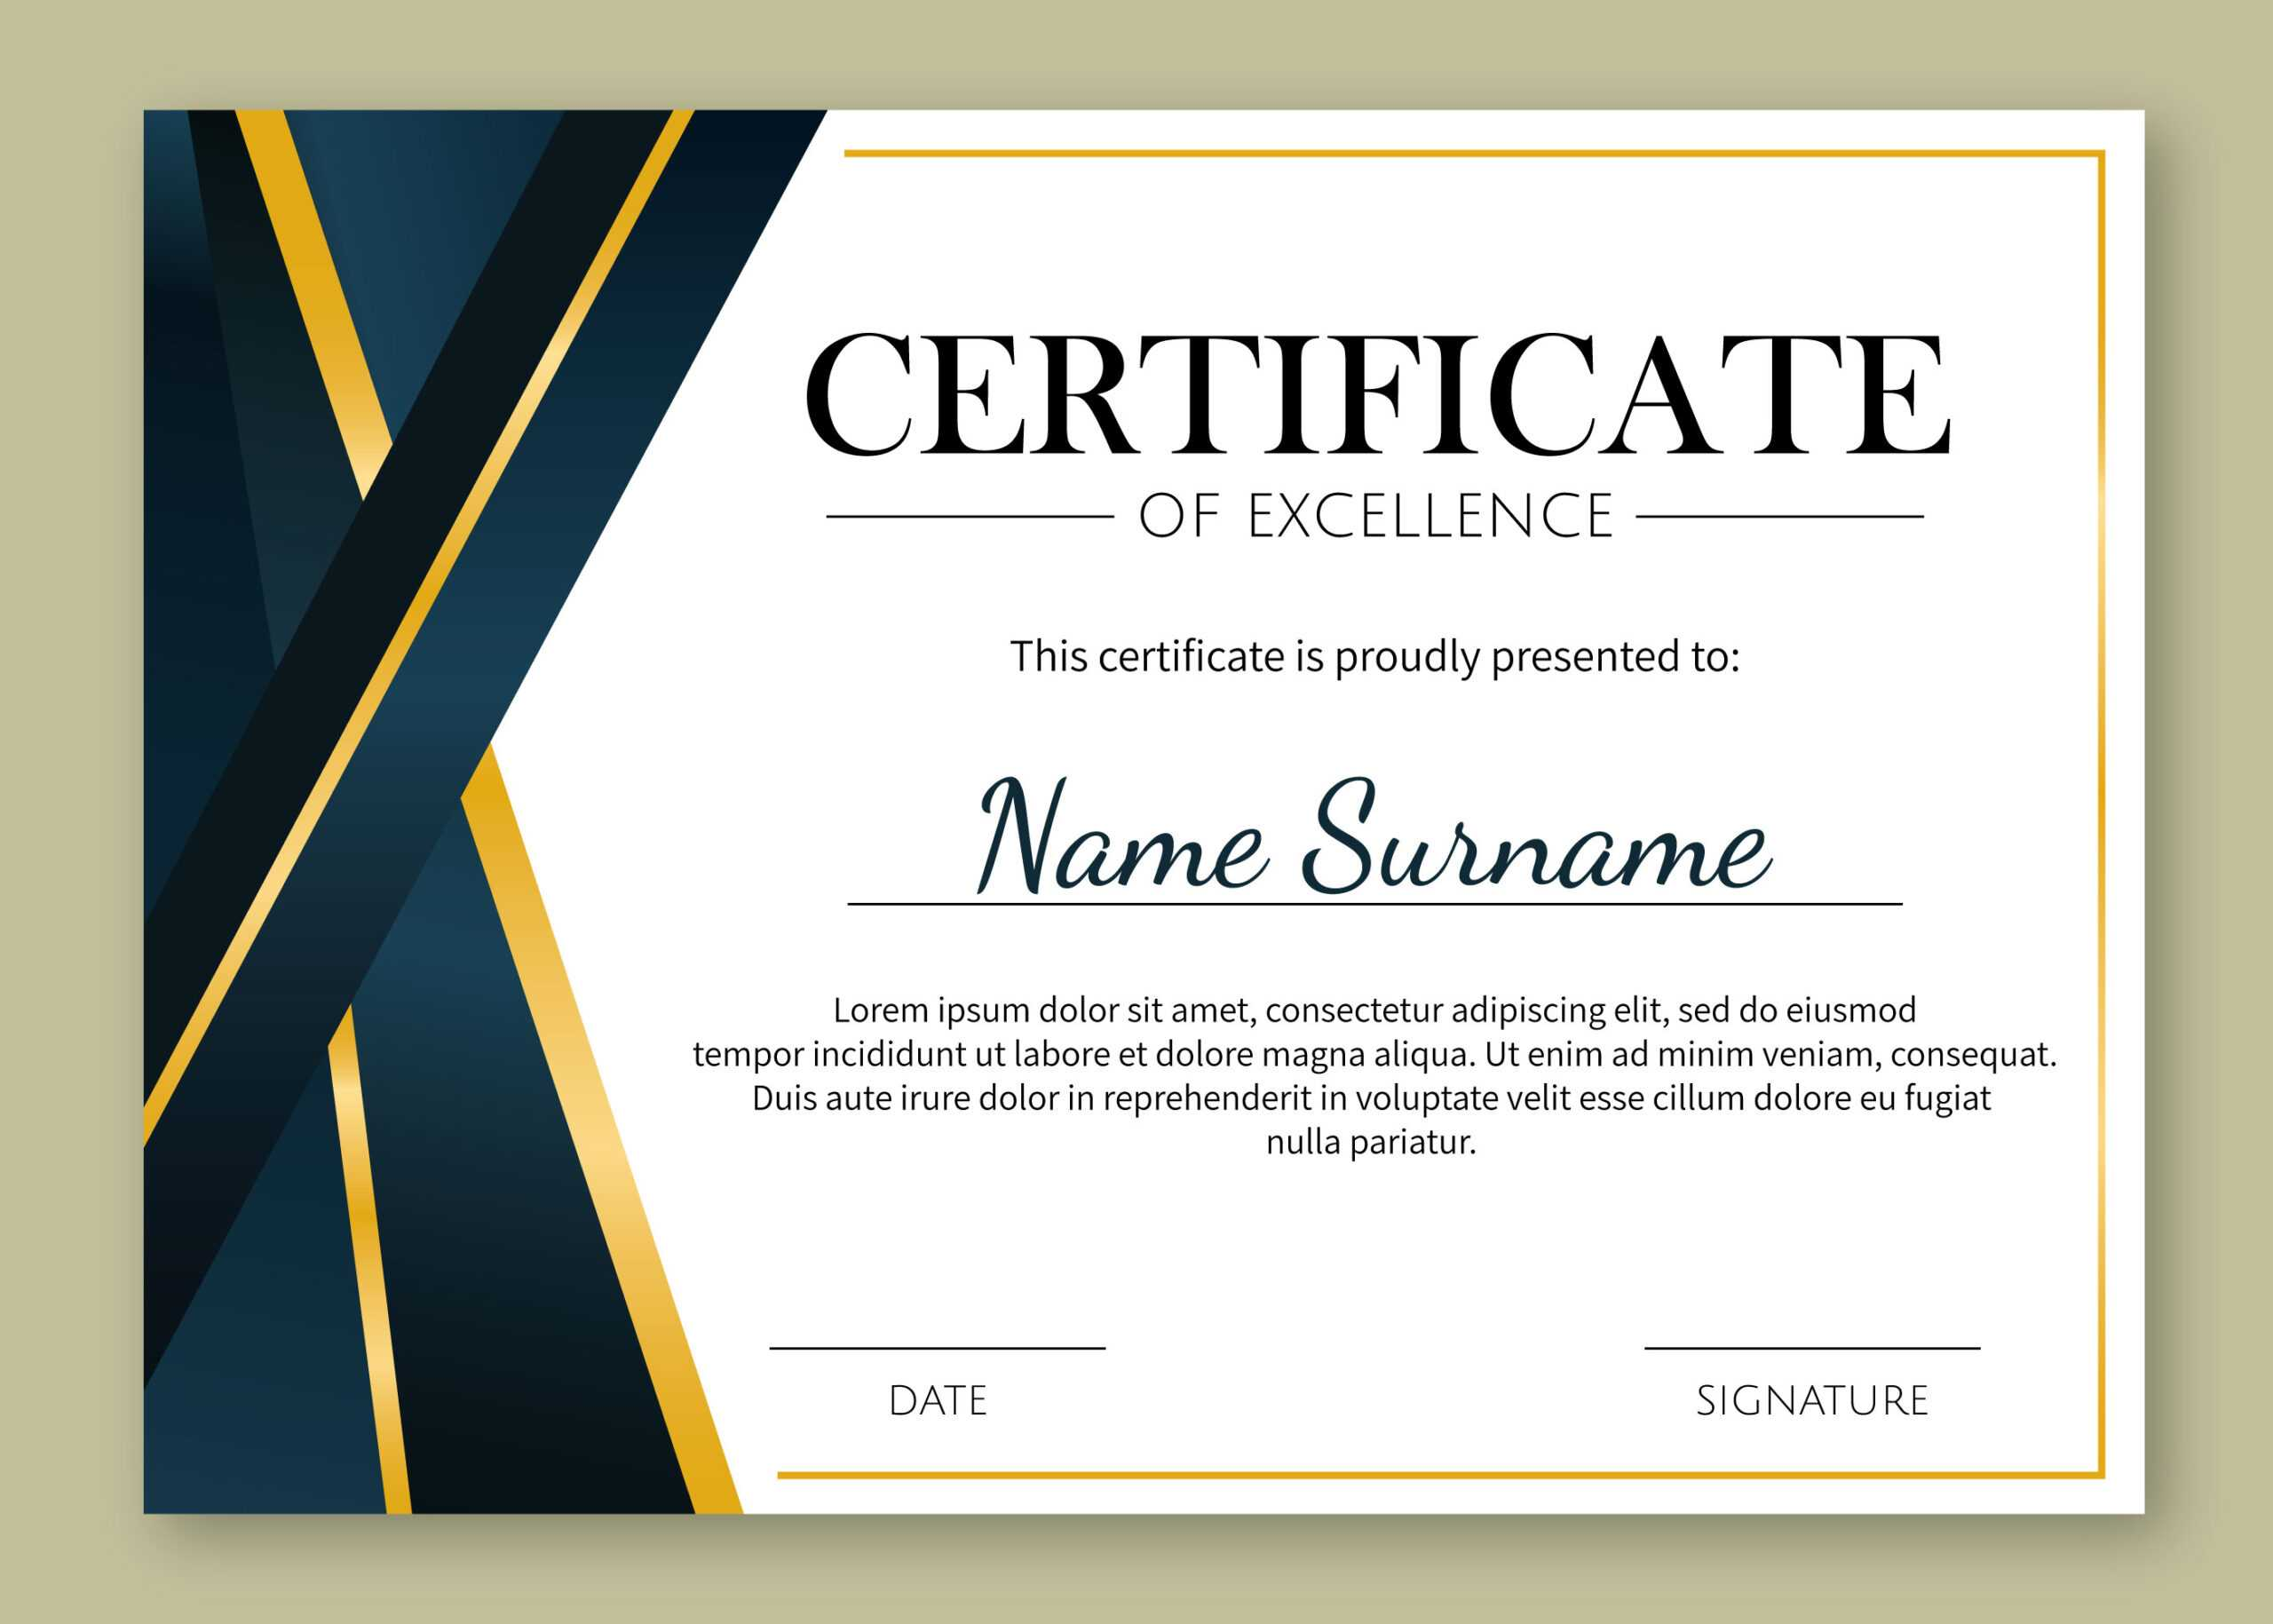 Certificate Of Excellence Template Free Download Pertaining To Certificate Of Excellence Template Free Download